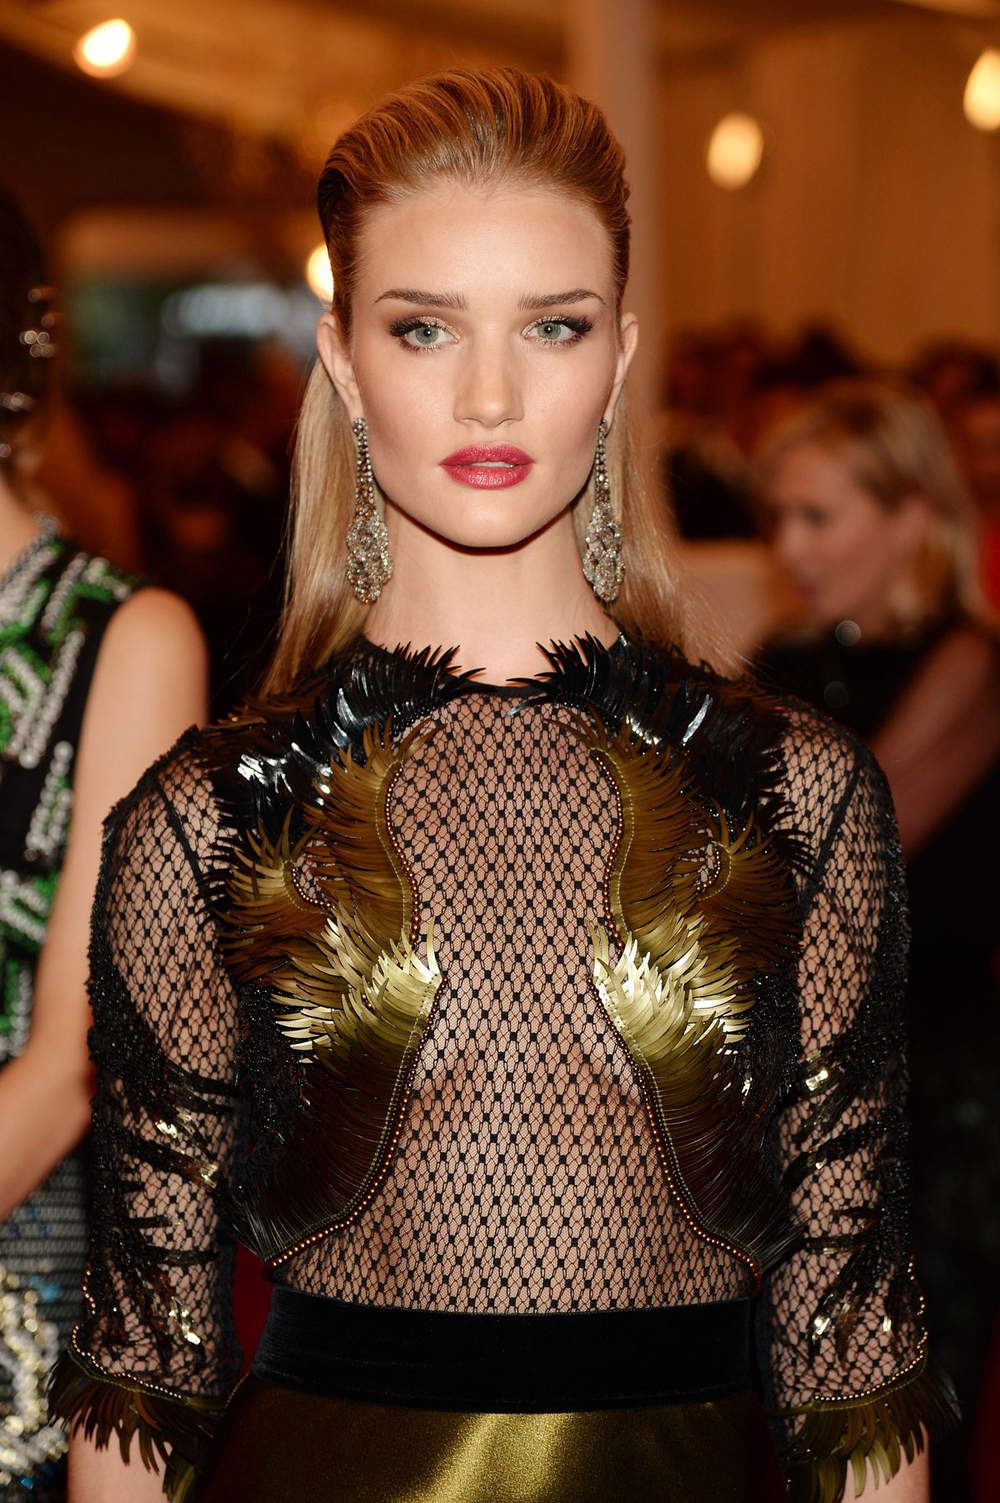 201305_ROSIEHUNTINGTONWHITELEY_METGALA_JC_MB_02.jpg